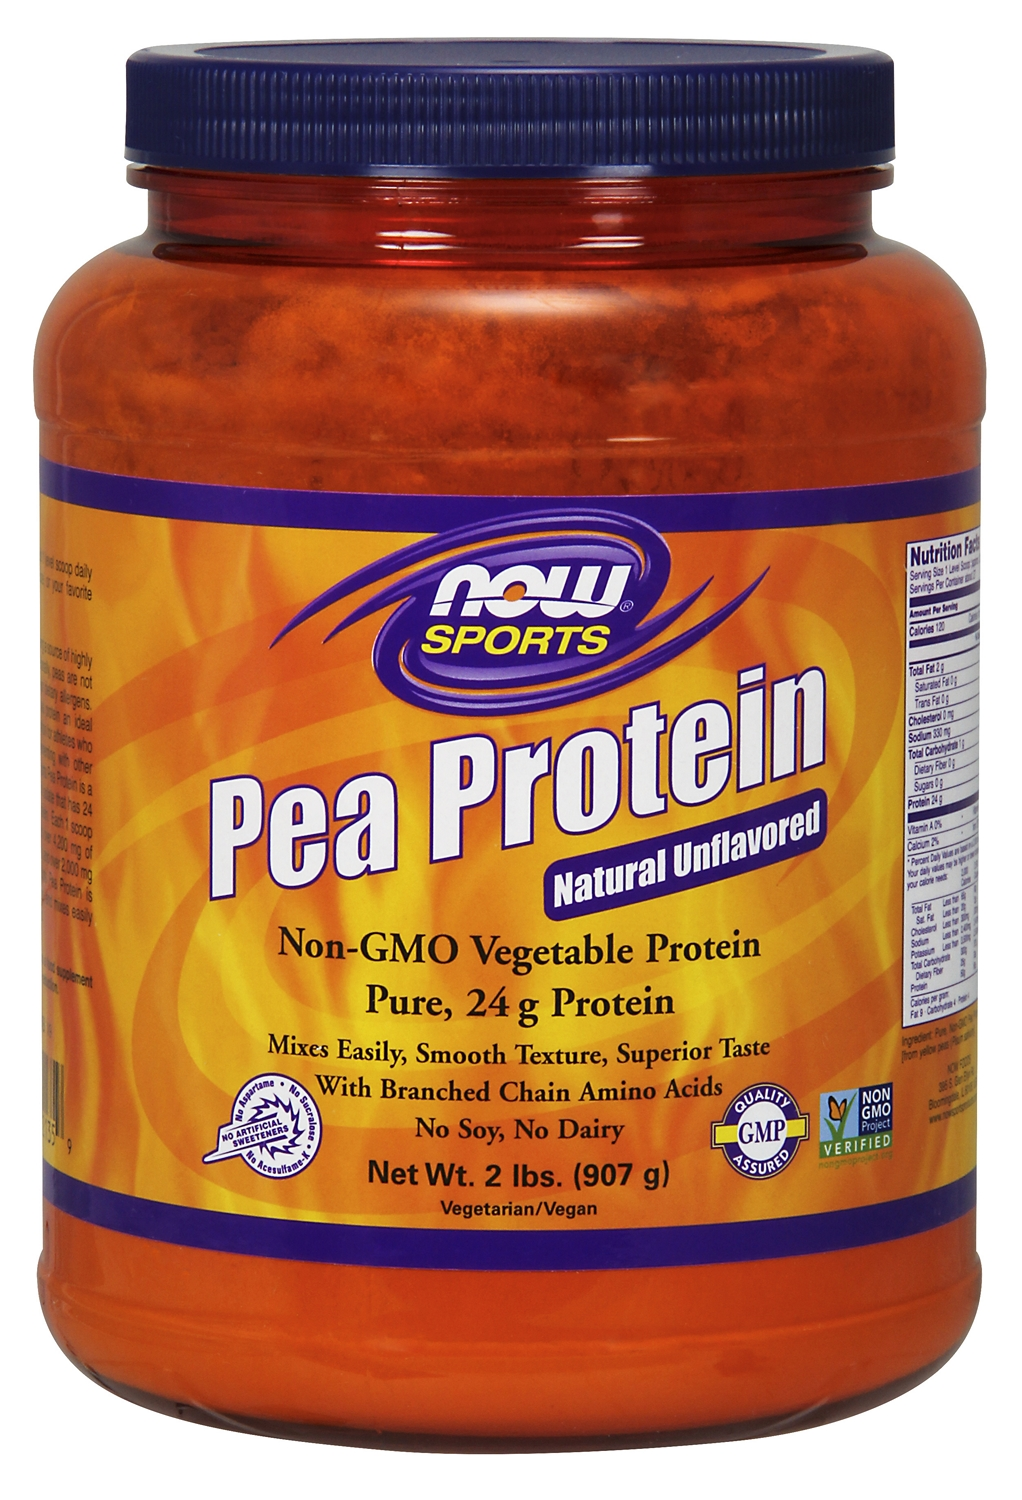 Pea Protein 2 lbs (907 g) by NOW